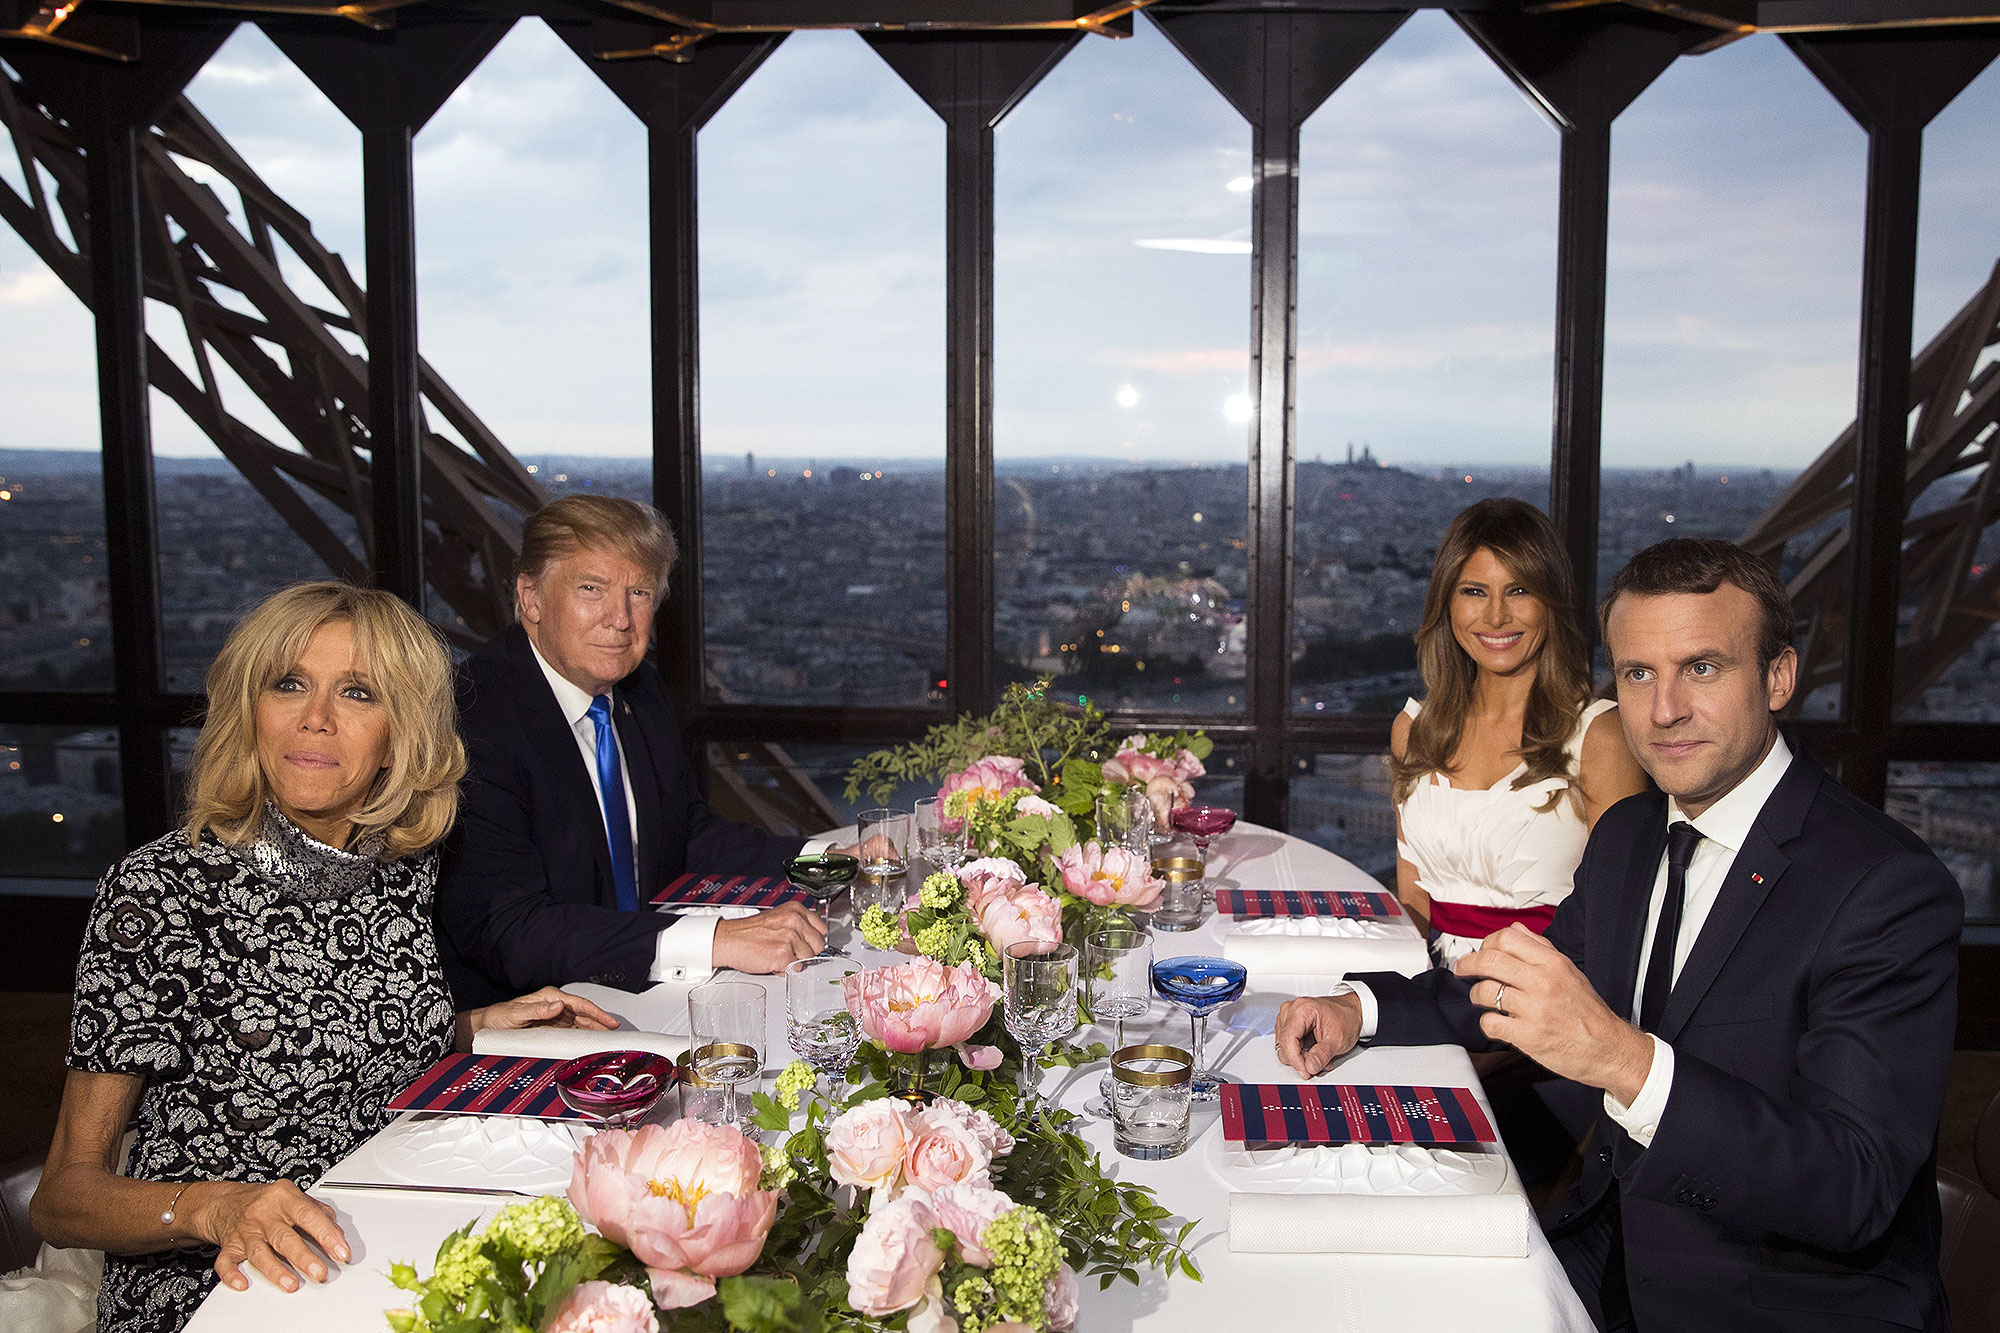 Here's What President Trump and Emanuel Macron Ate at the Michelin-Starred Restaurant Inside the Eiffel Tower